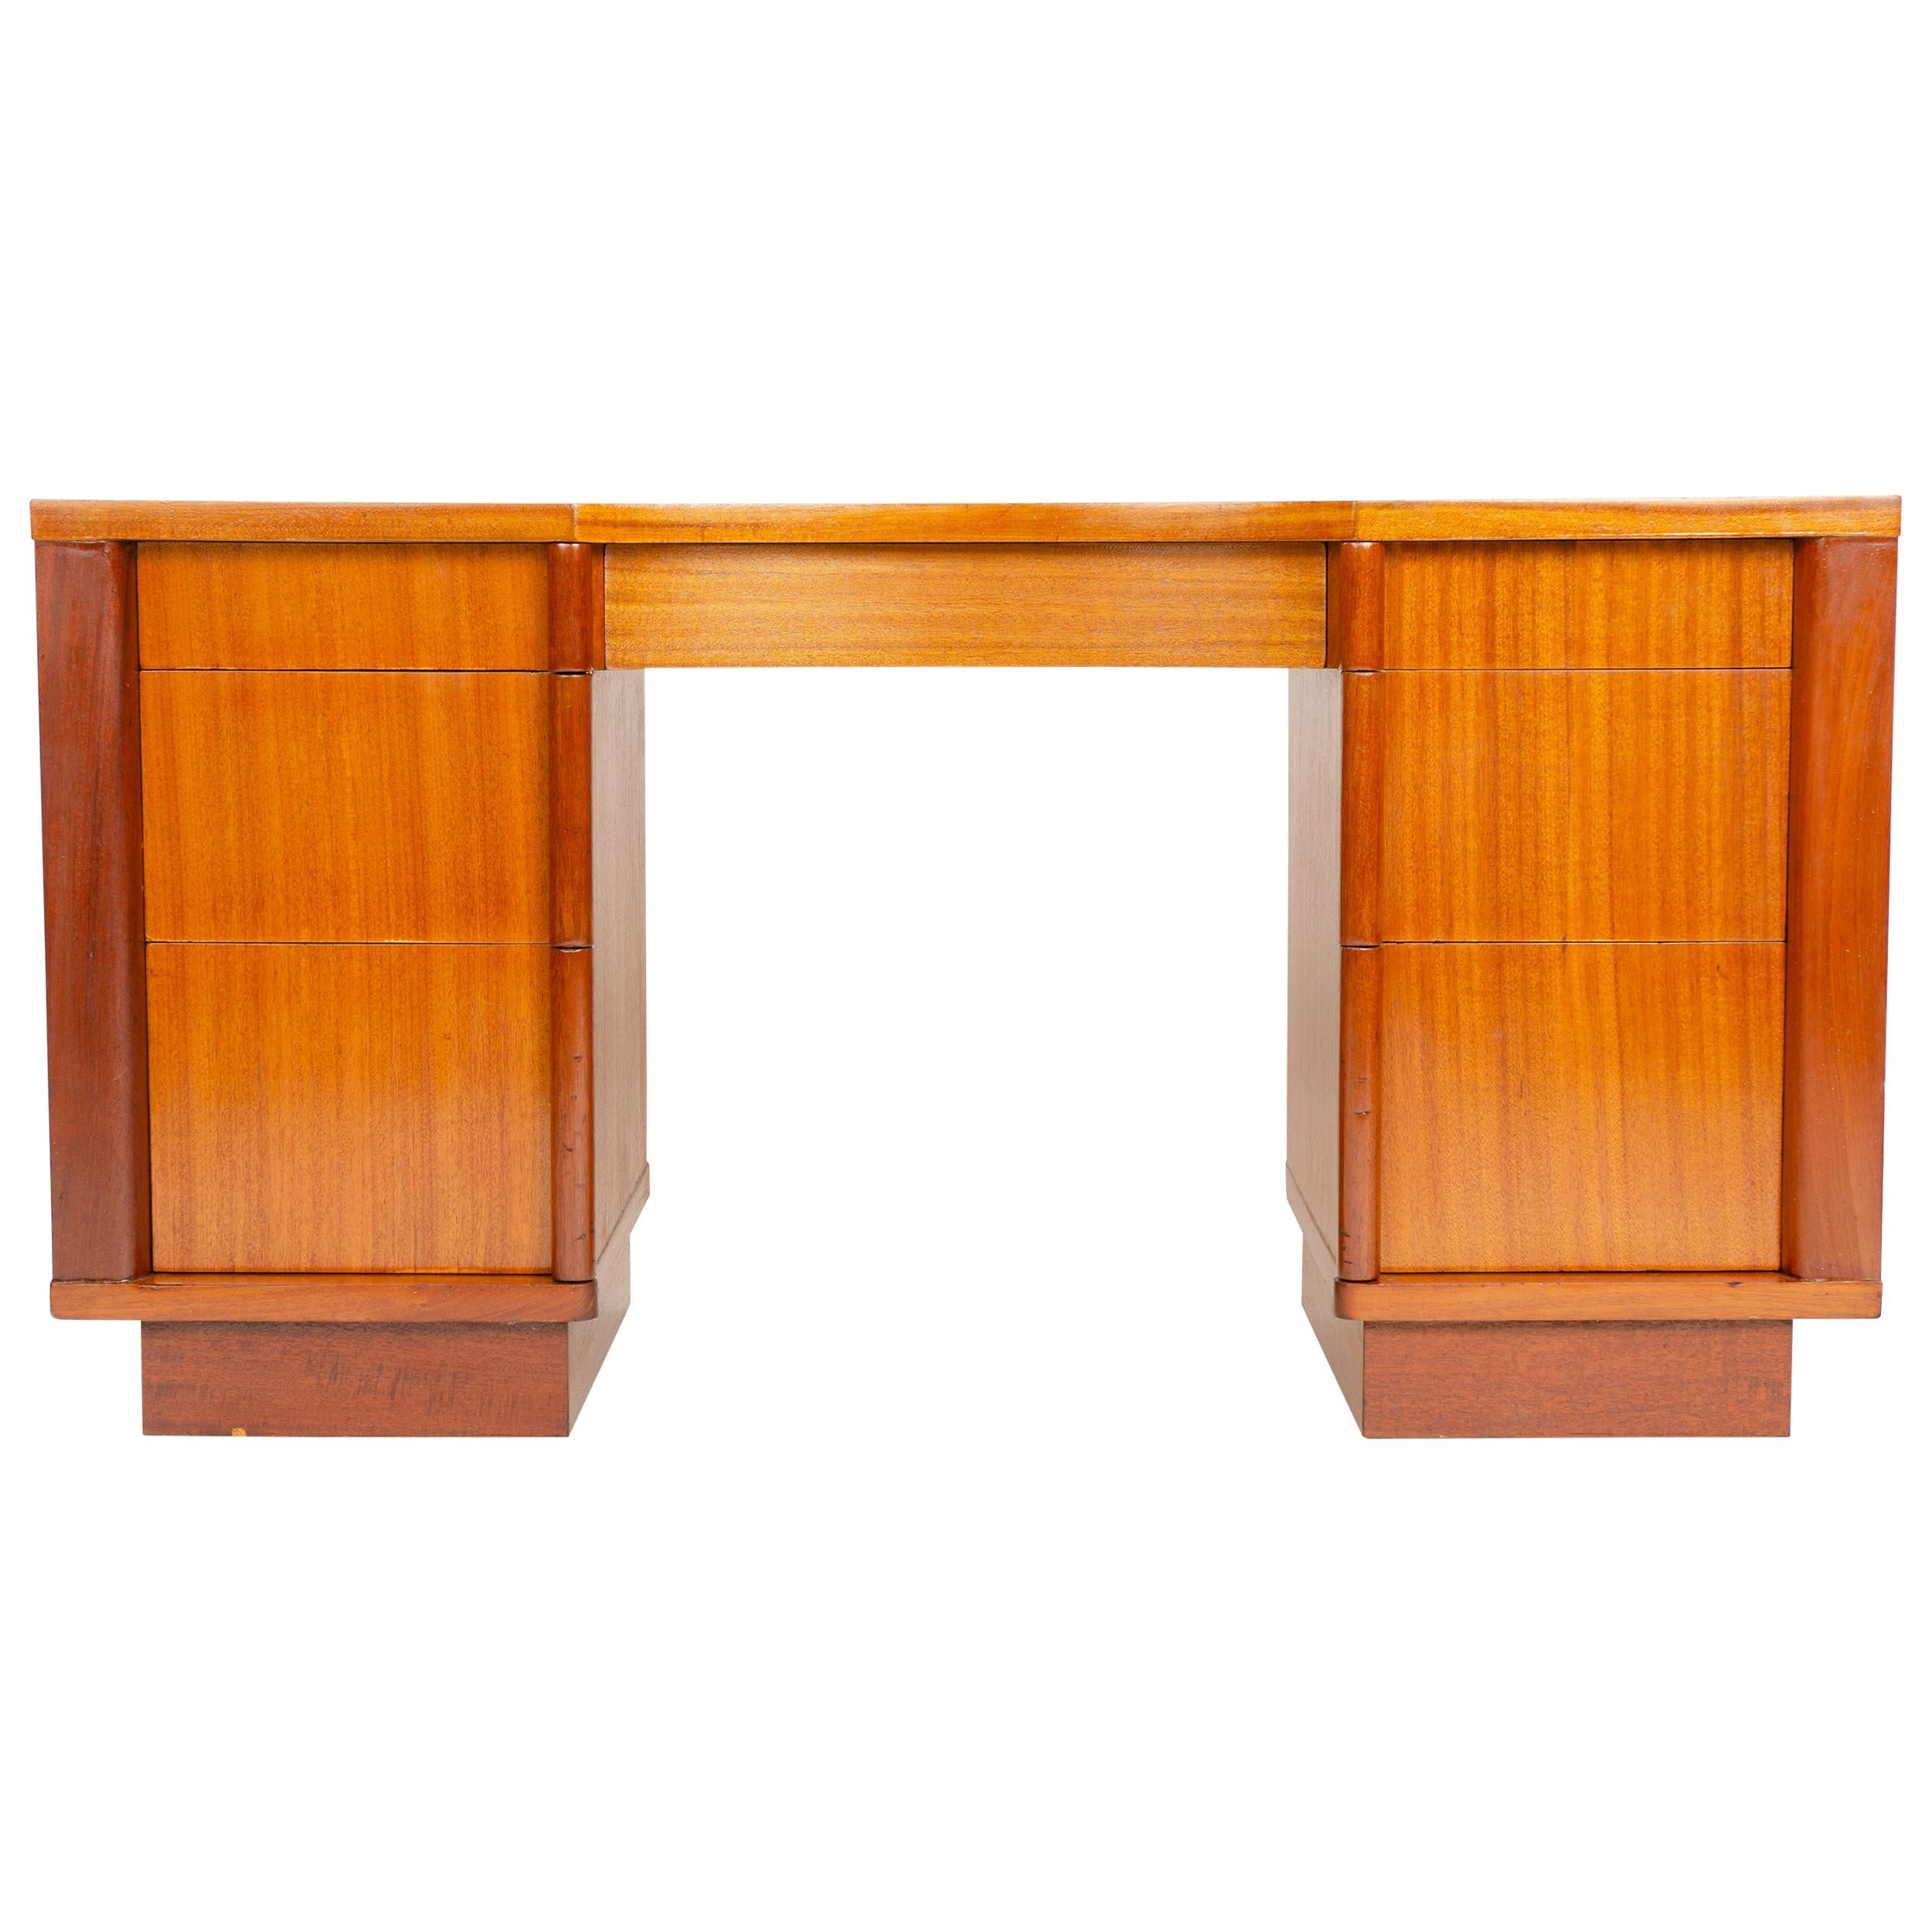 1950s Demilune Vanity or Desk by Edward Wormley for Dunbar